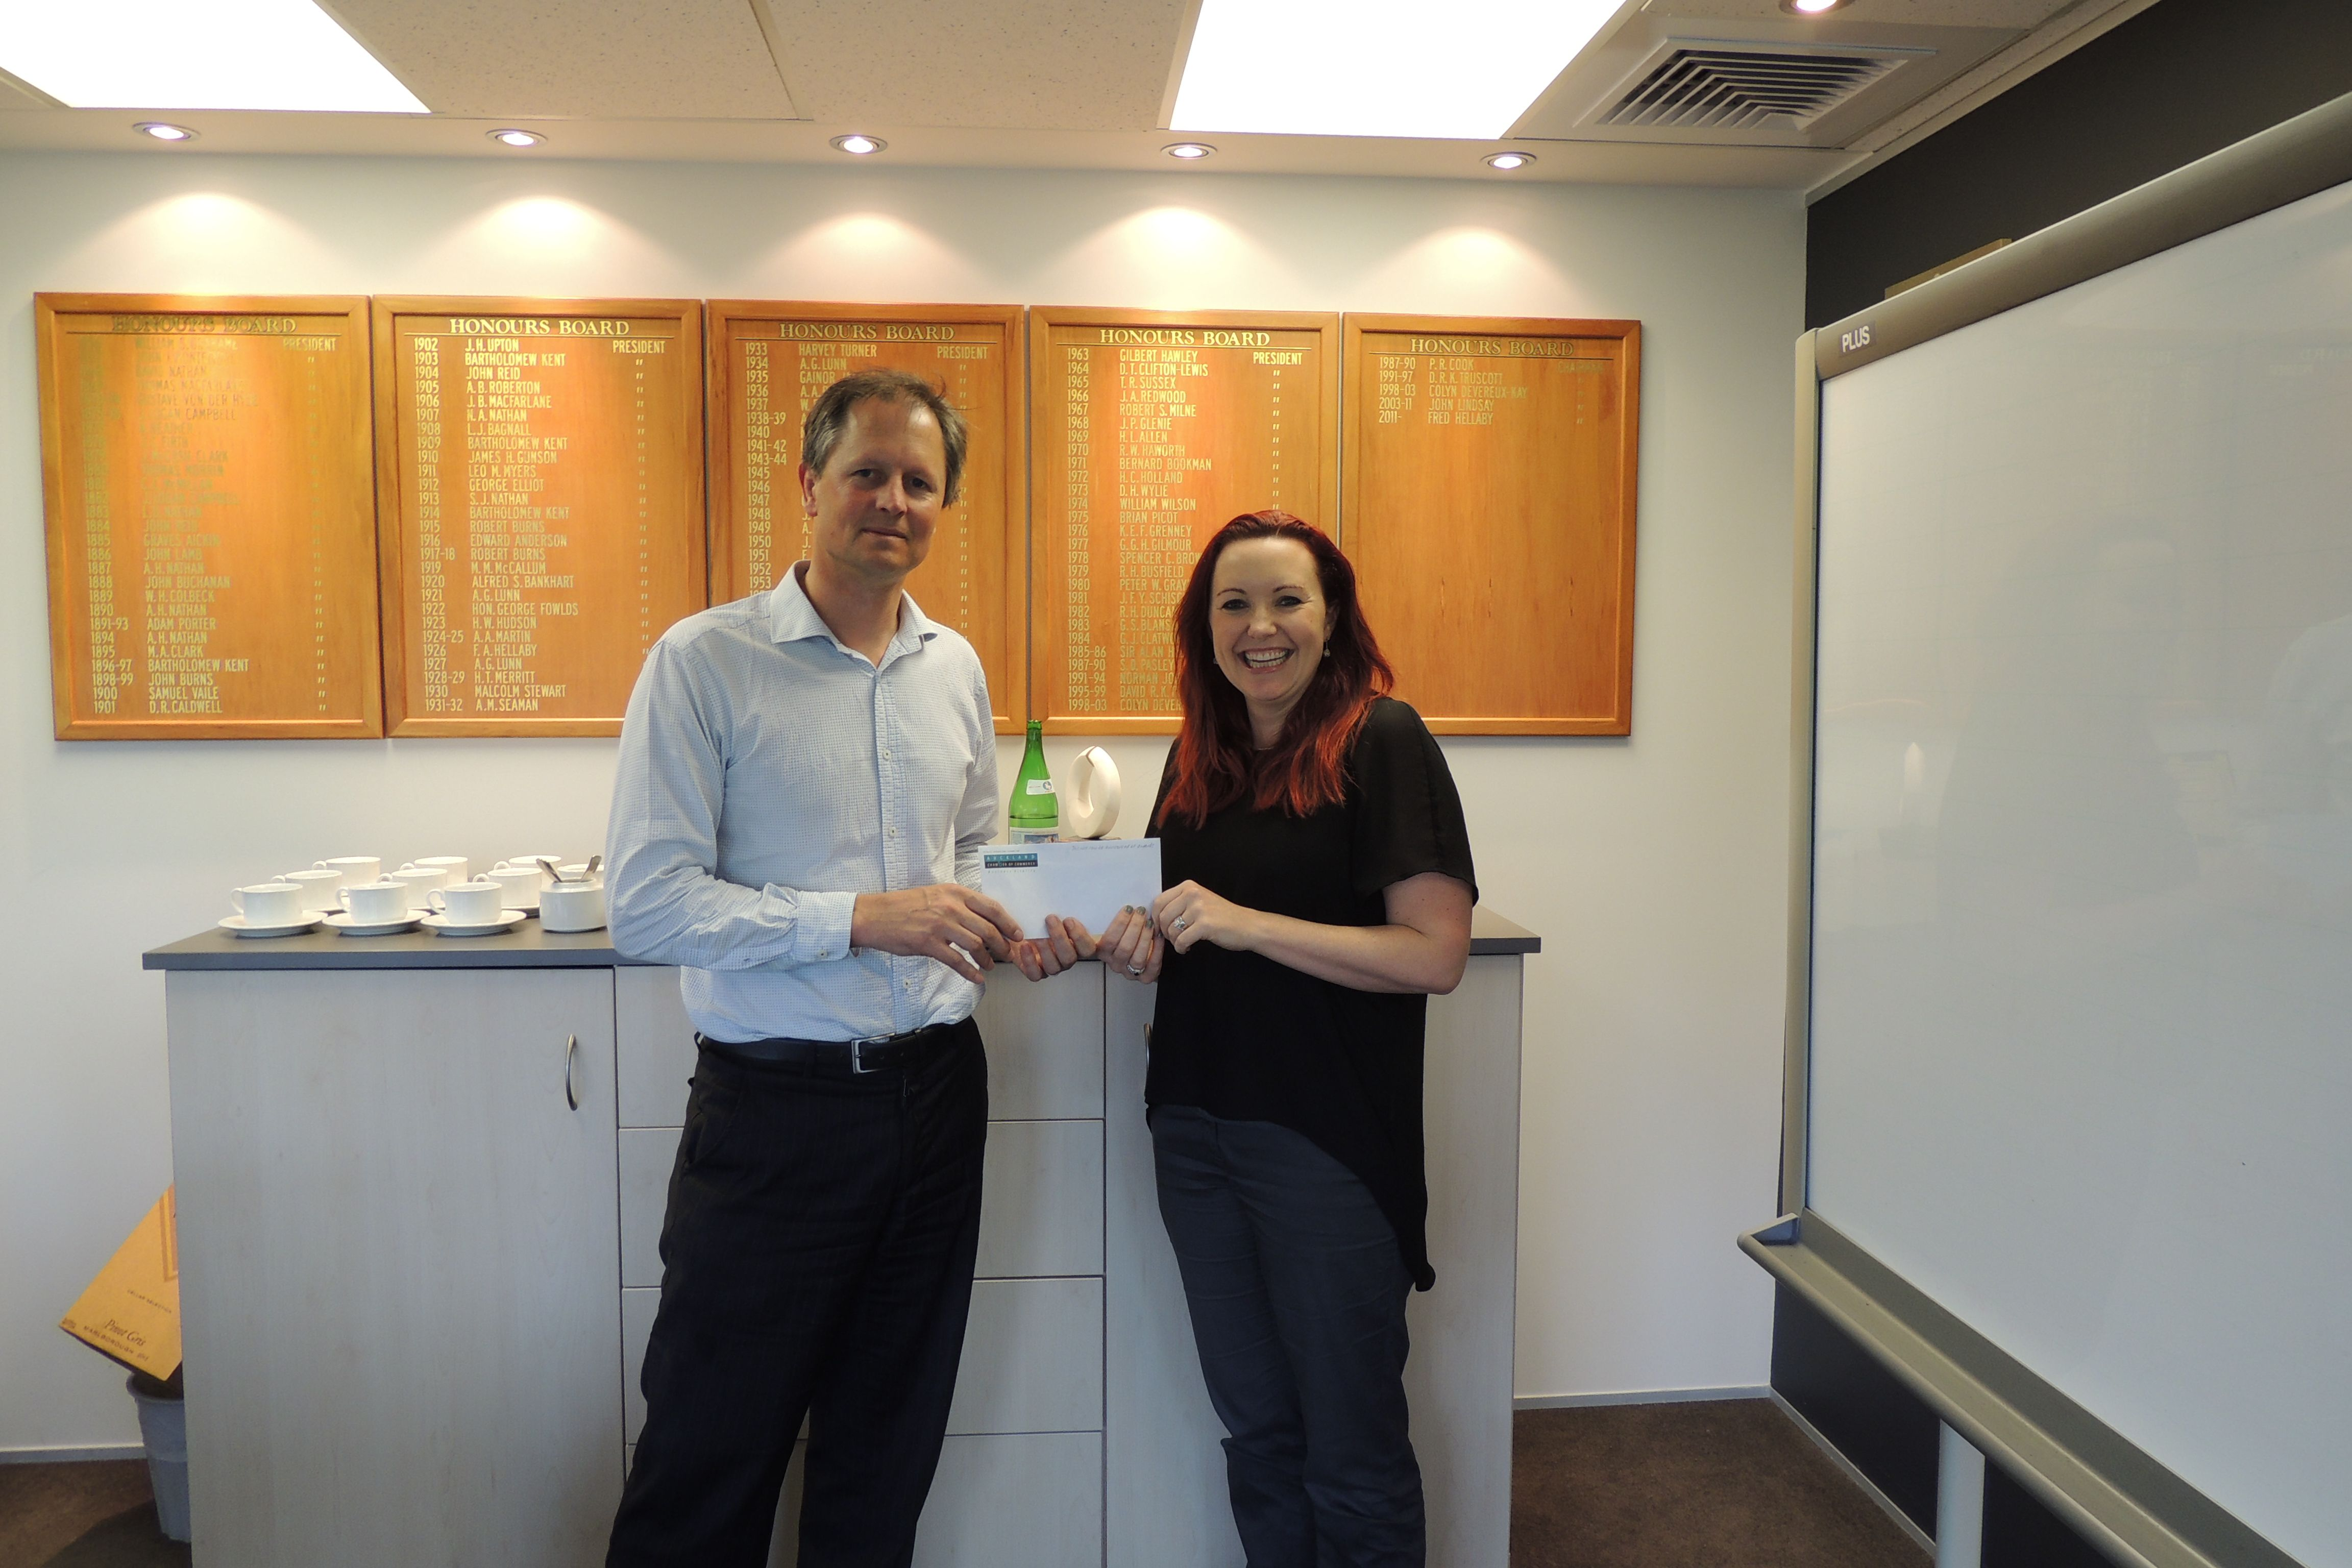 Lizzie Hines collecting her cheque for $2500 from Charles Fairbairn. Lizzie won the prize in a random draw that automatically extended to all businesses who entered the 2013 Westpac Auckland Central Business Awards;